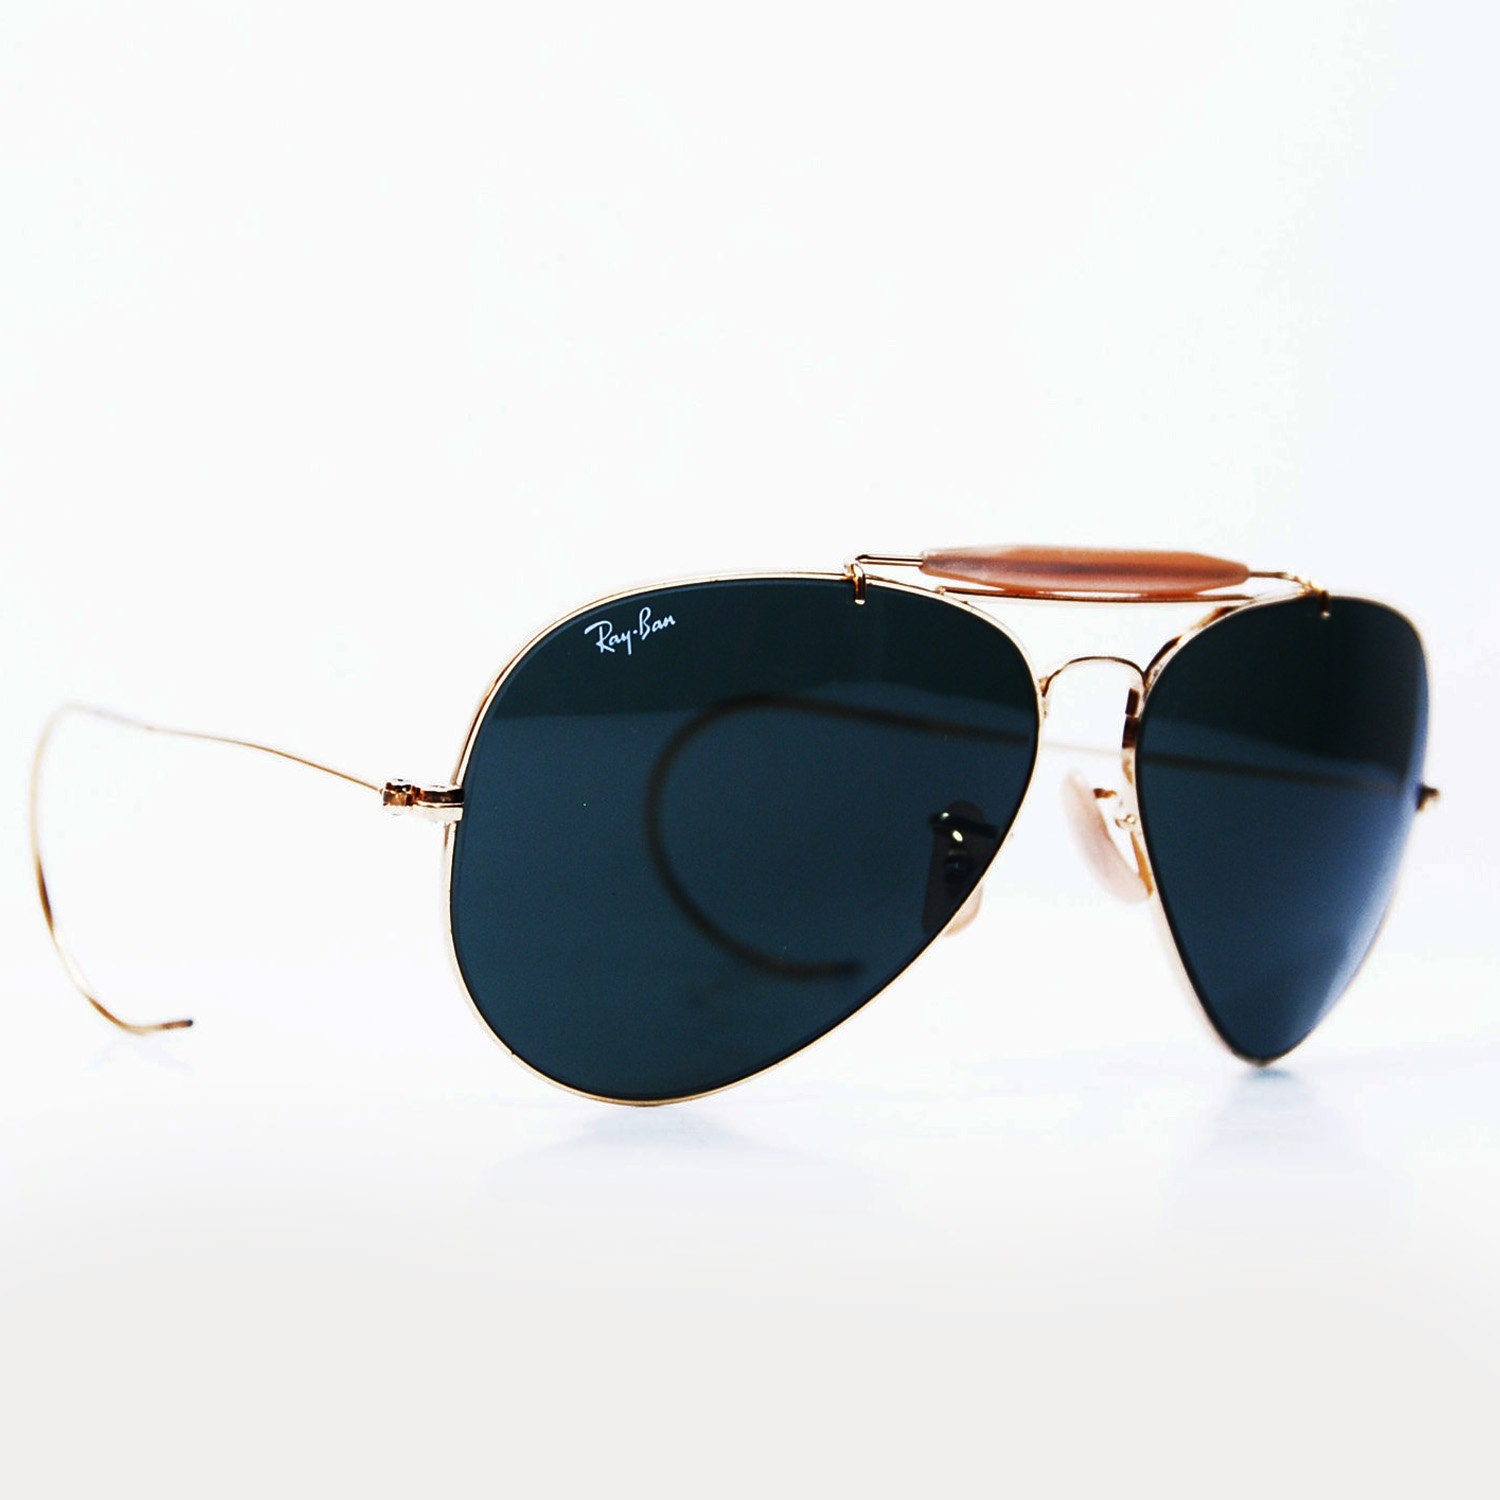 5a8a34bd5 Ray Ban For Driving Bausch Lomb | www.tapdance.org